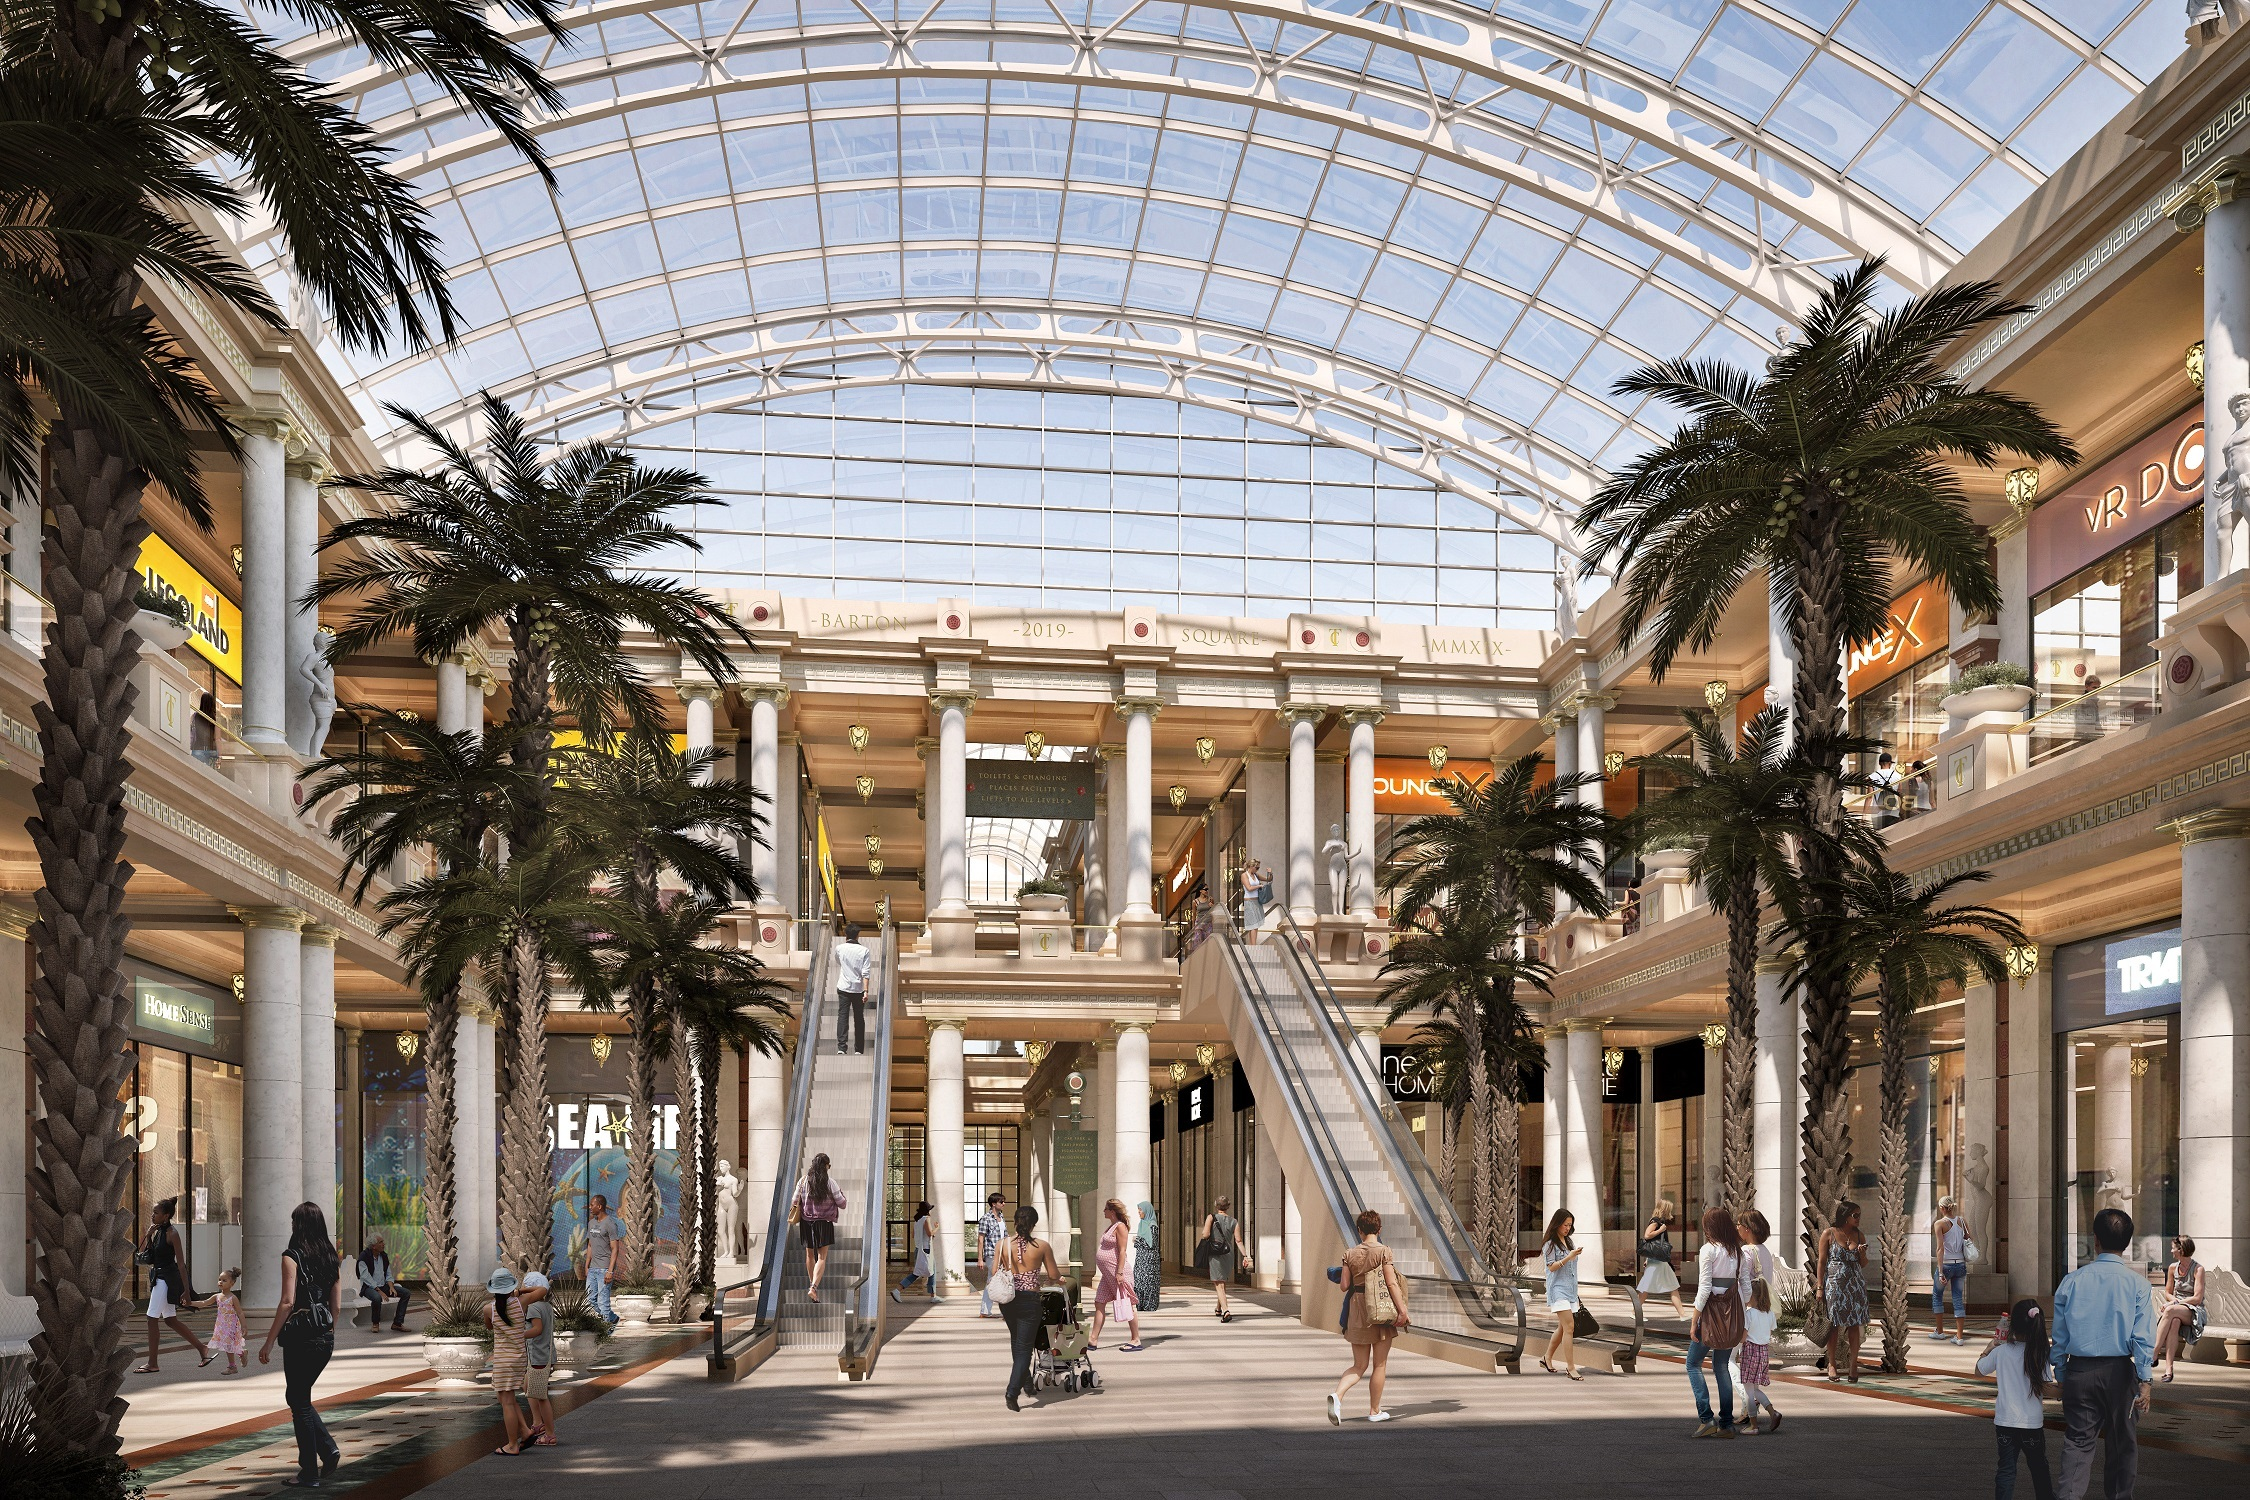 Trafford Centre gets £75million makeover and giant new Primark store